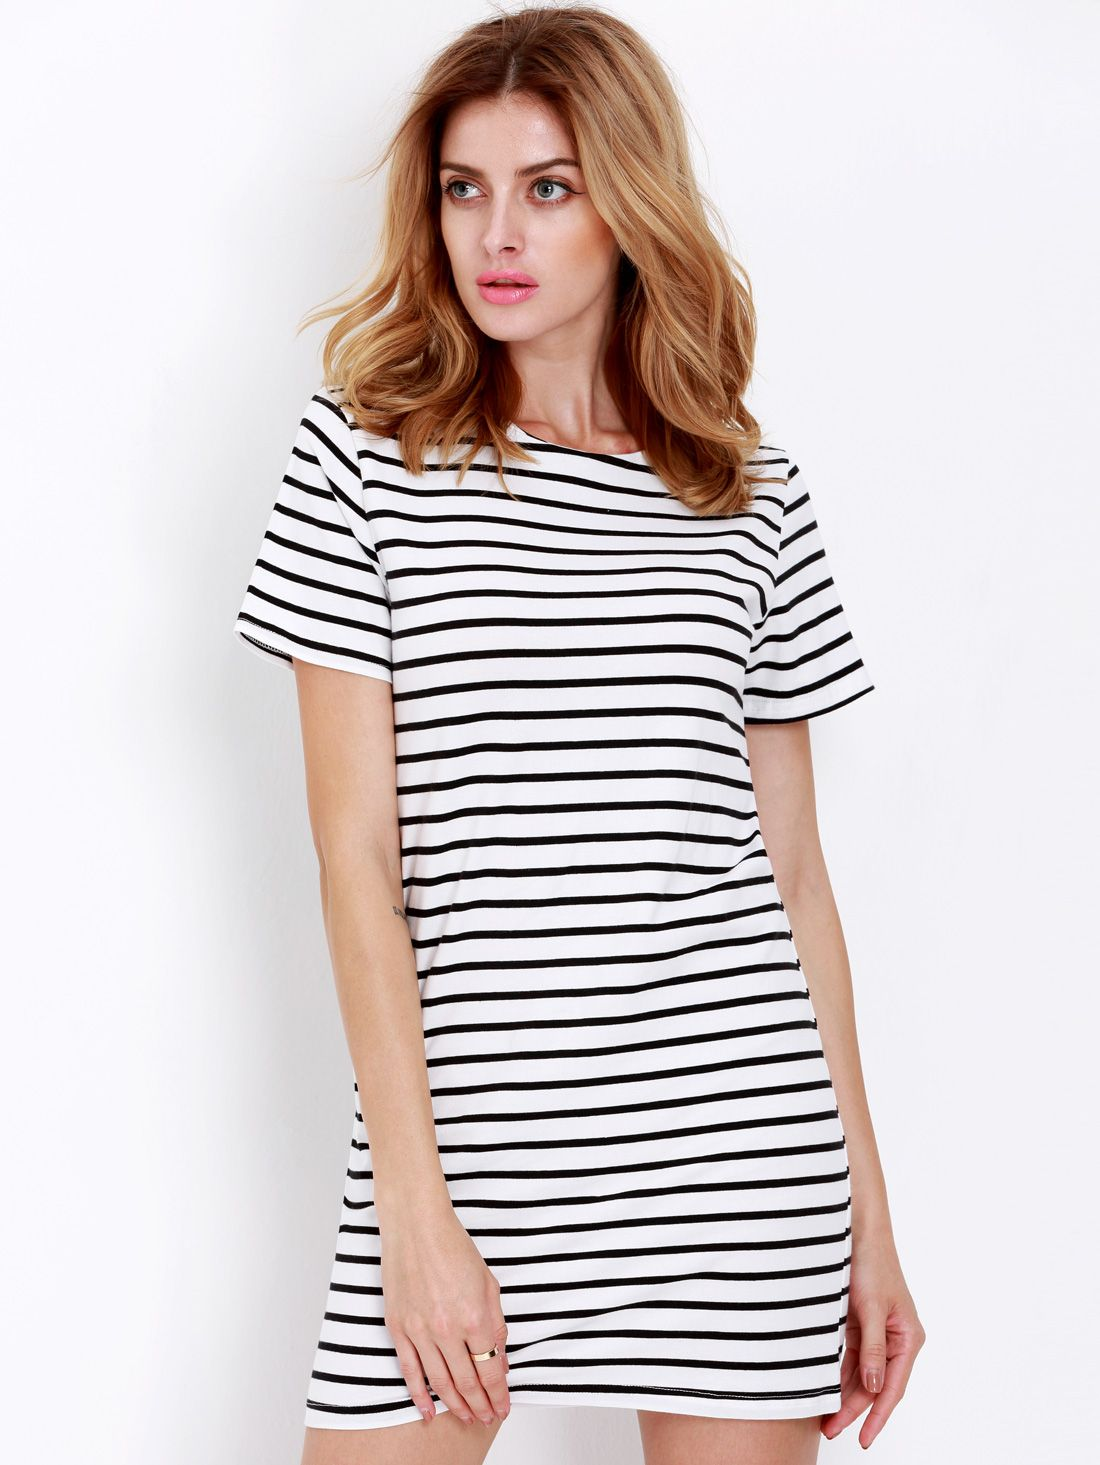 052a57a93 Love the simplicity style. Black White Striped Short Sleeve Straight ...